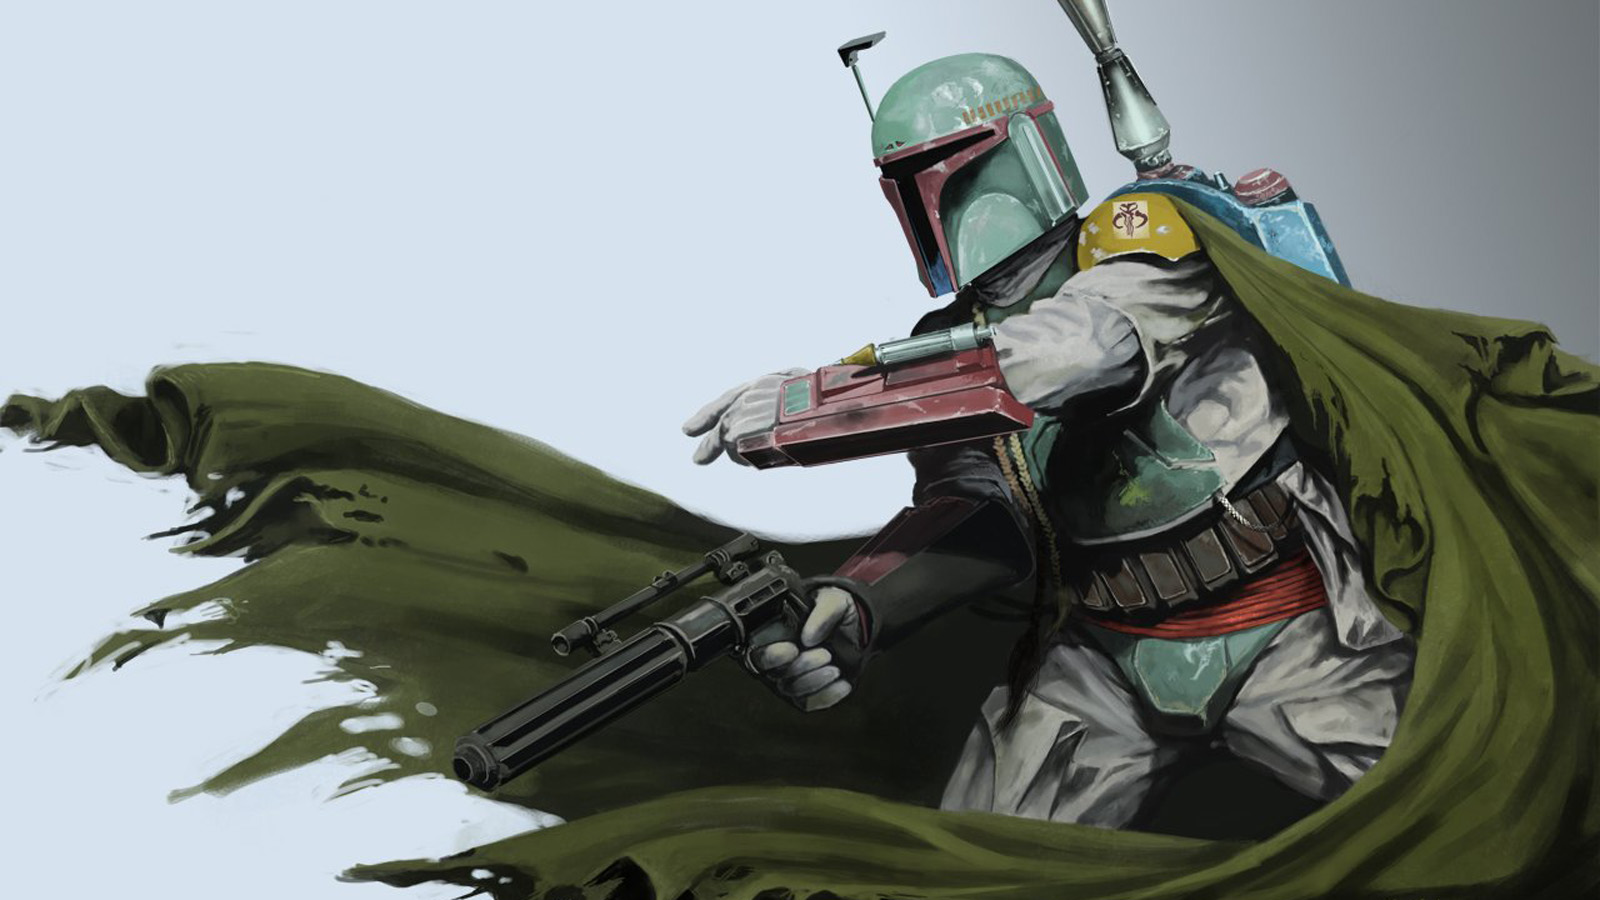 boba fett is a mandalorian warrior and bounty hunter wallpaper and background image 1600x900. Black Bedroom Furniture Sets. Home Design Ideas